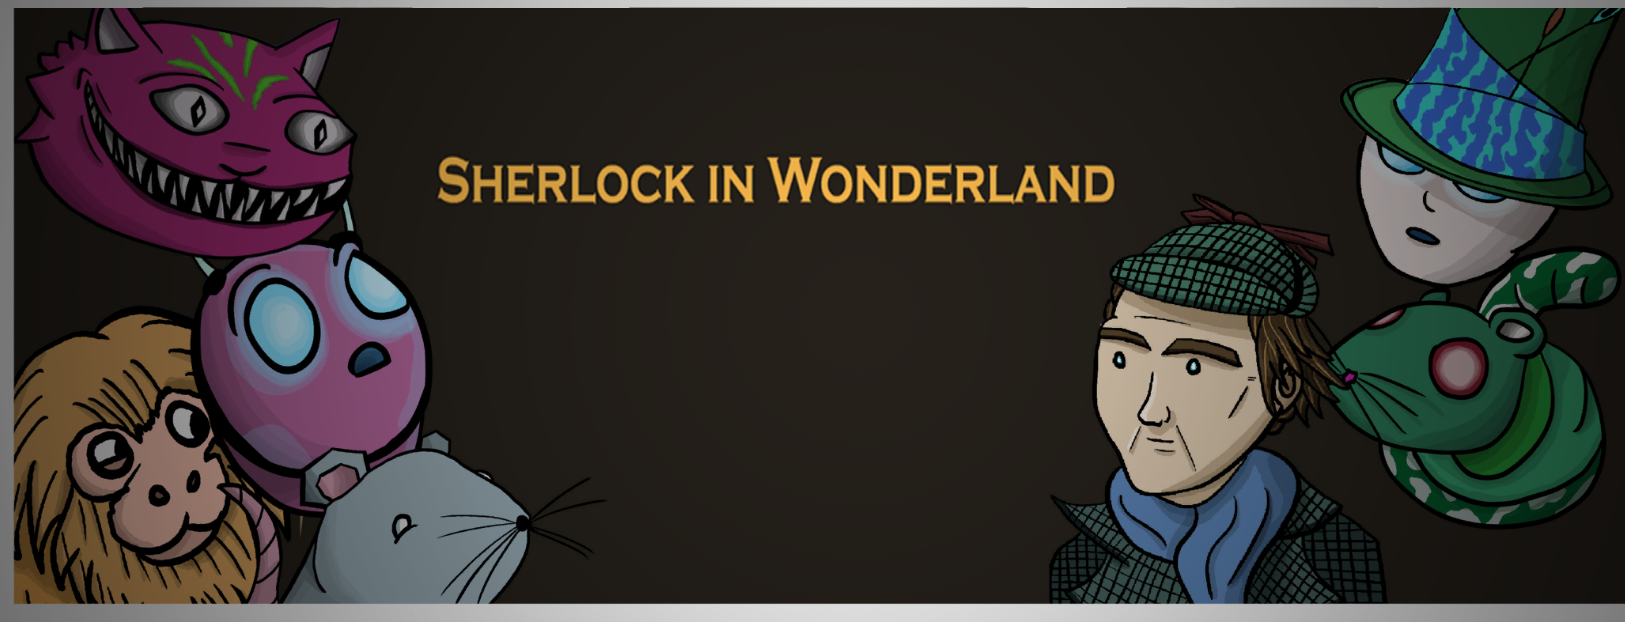 Sherlock in Wonderland